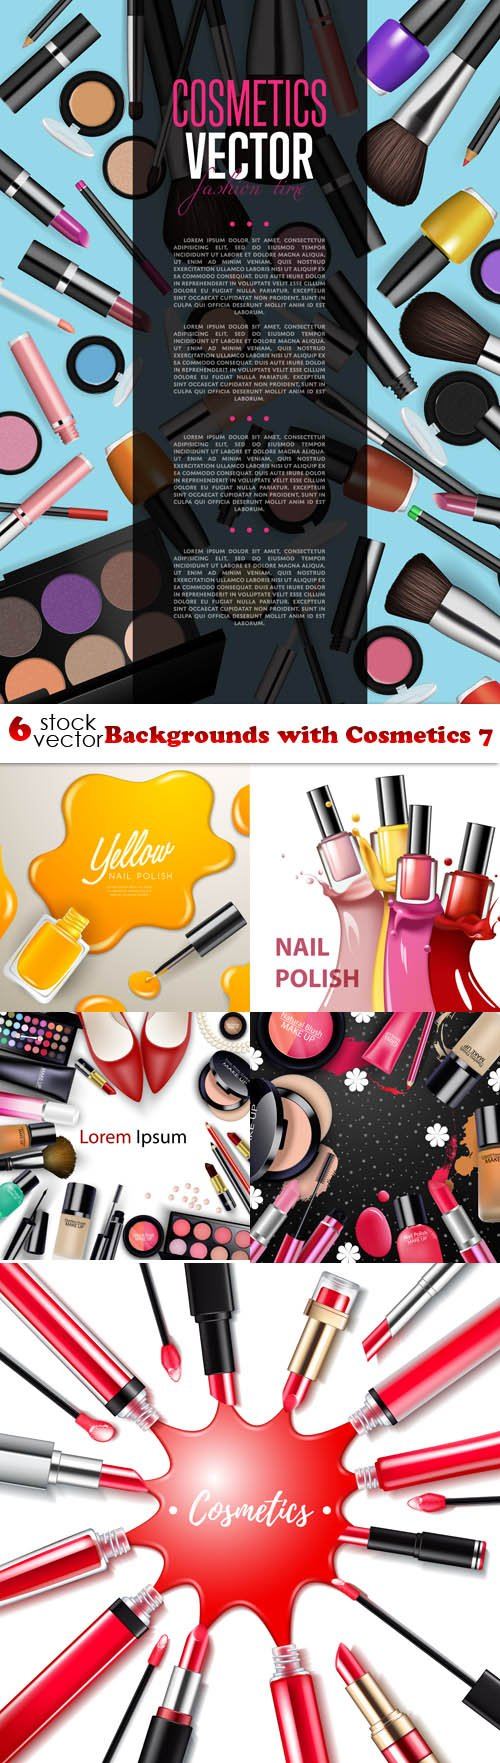 Vectors - Backgrounds with Cosmetics 7